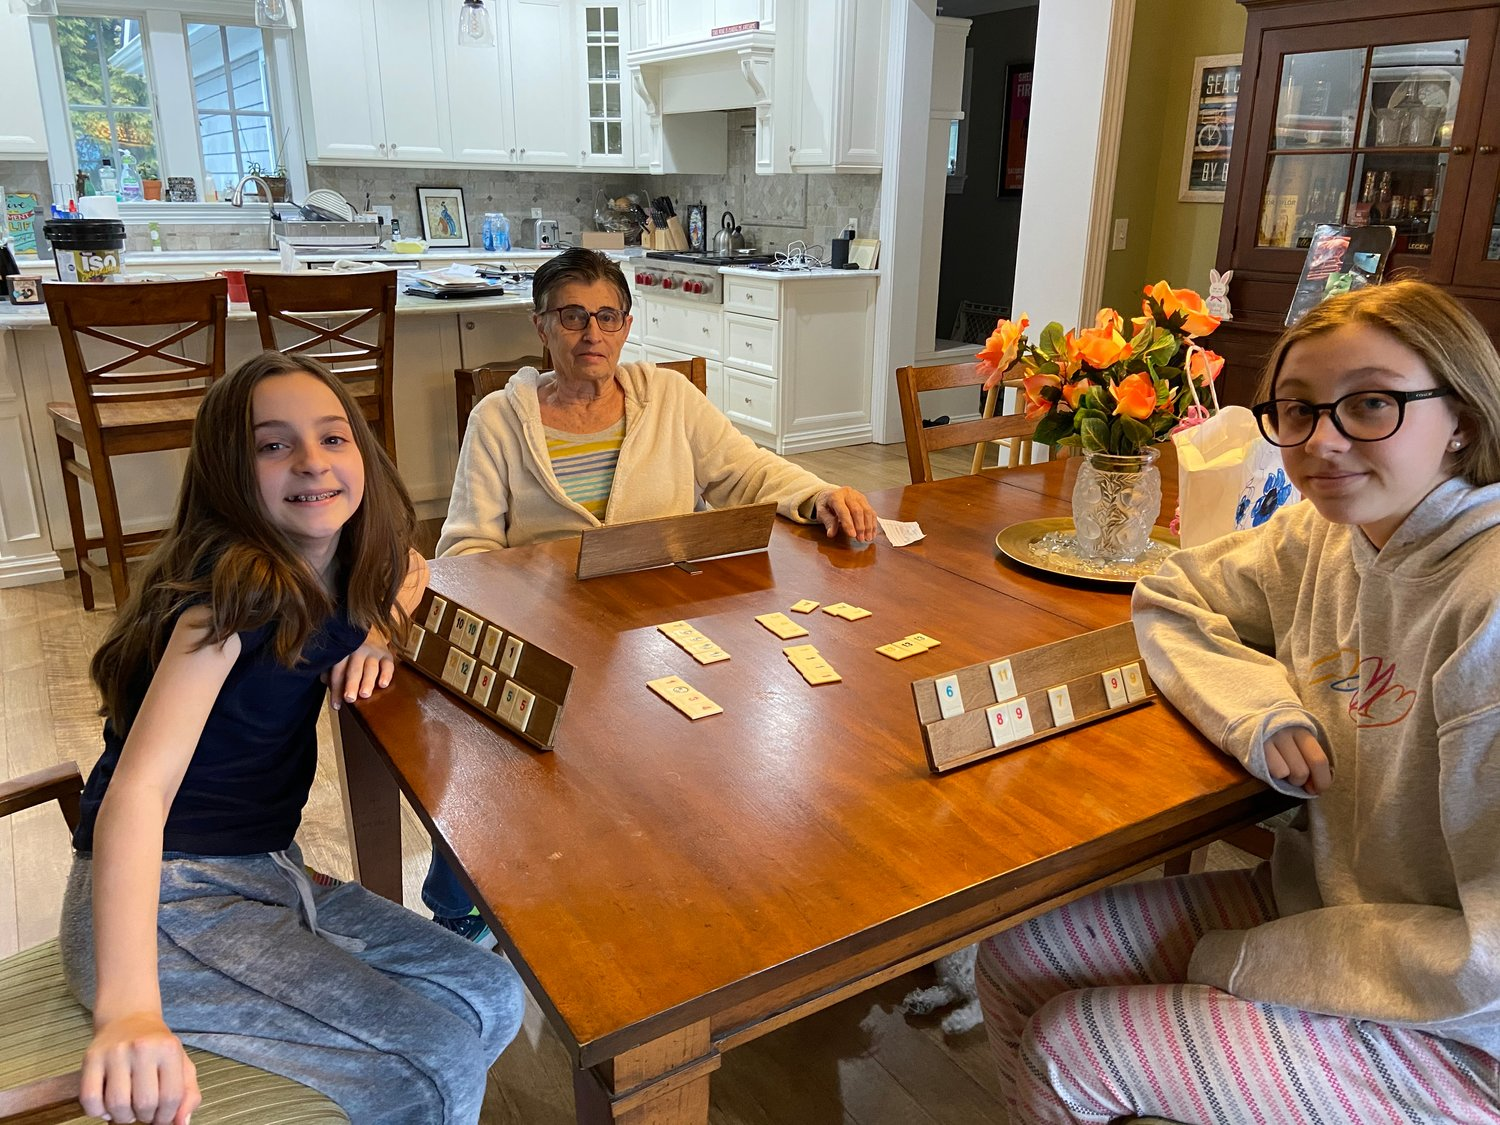 Barbara Lillis, center, has spent much of her time at home playing games like Rummikub with her granddaughters Jordan, left, and Jessica.